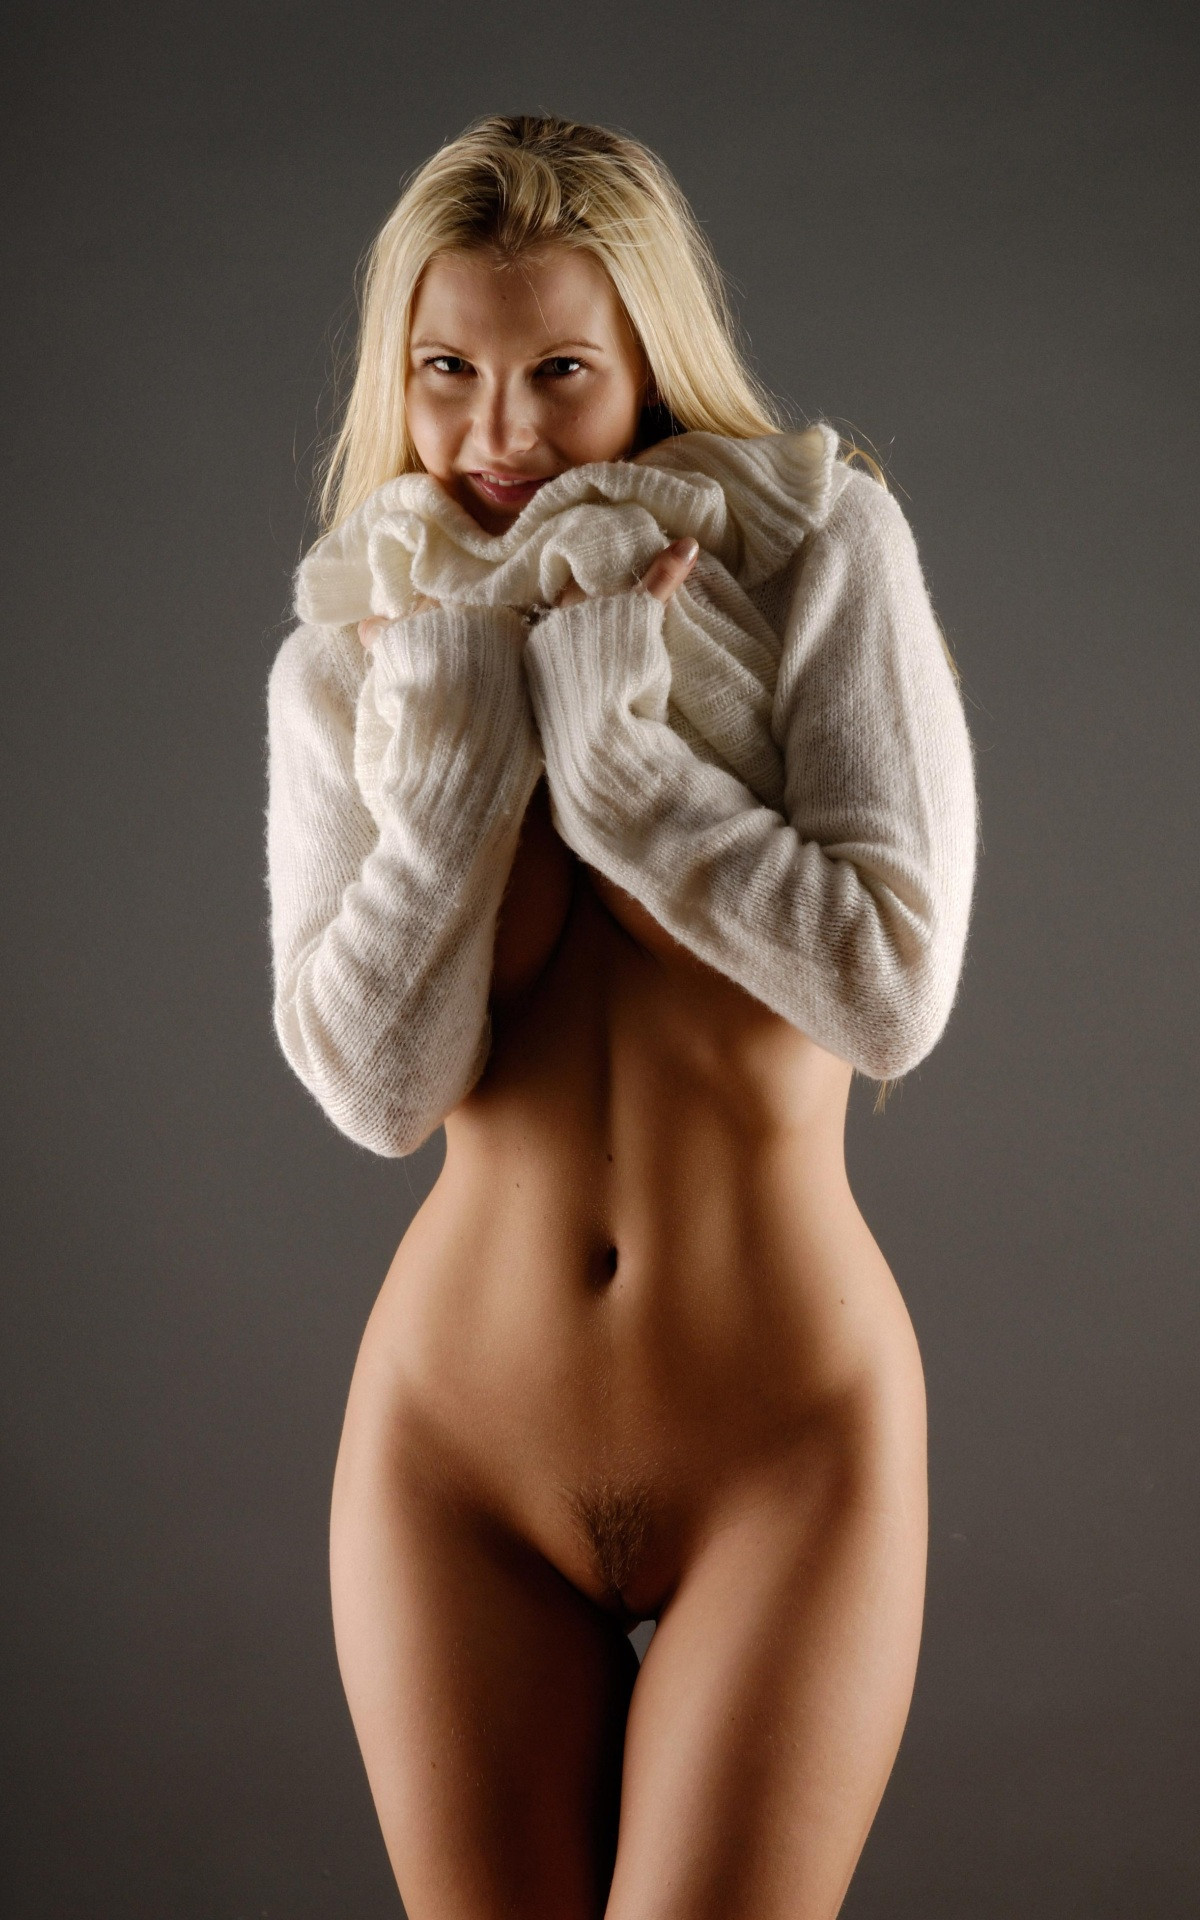 Nude blonde in sweater, beautiful girl teasing gallery